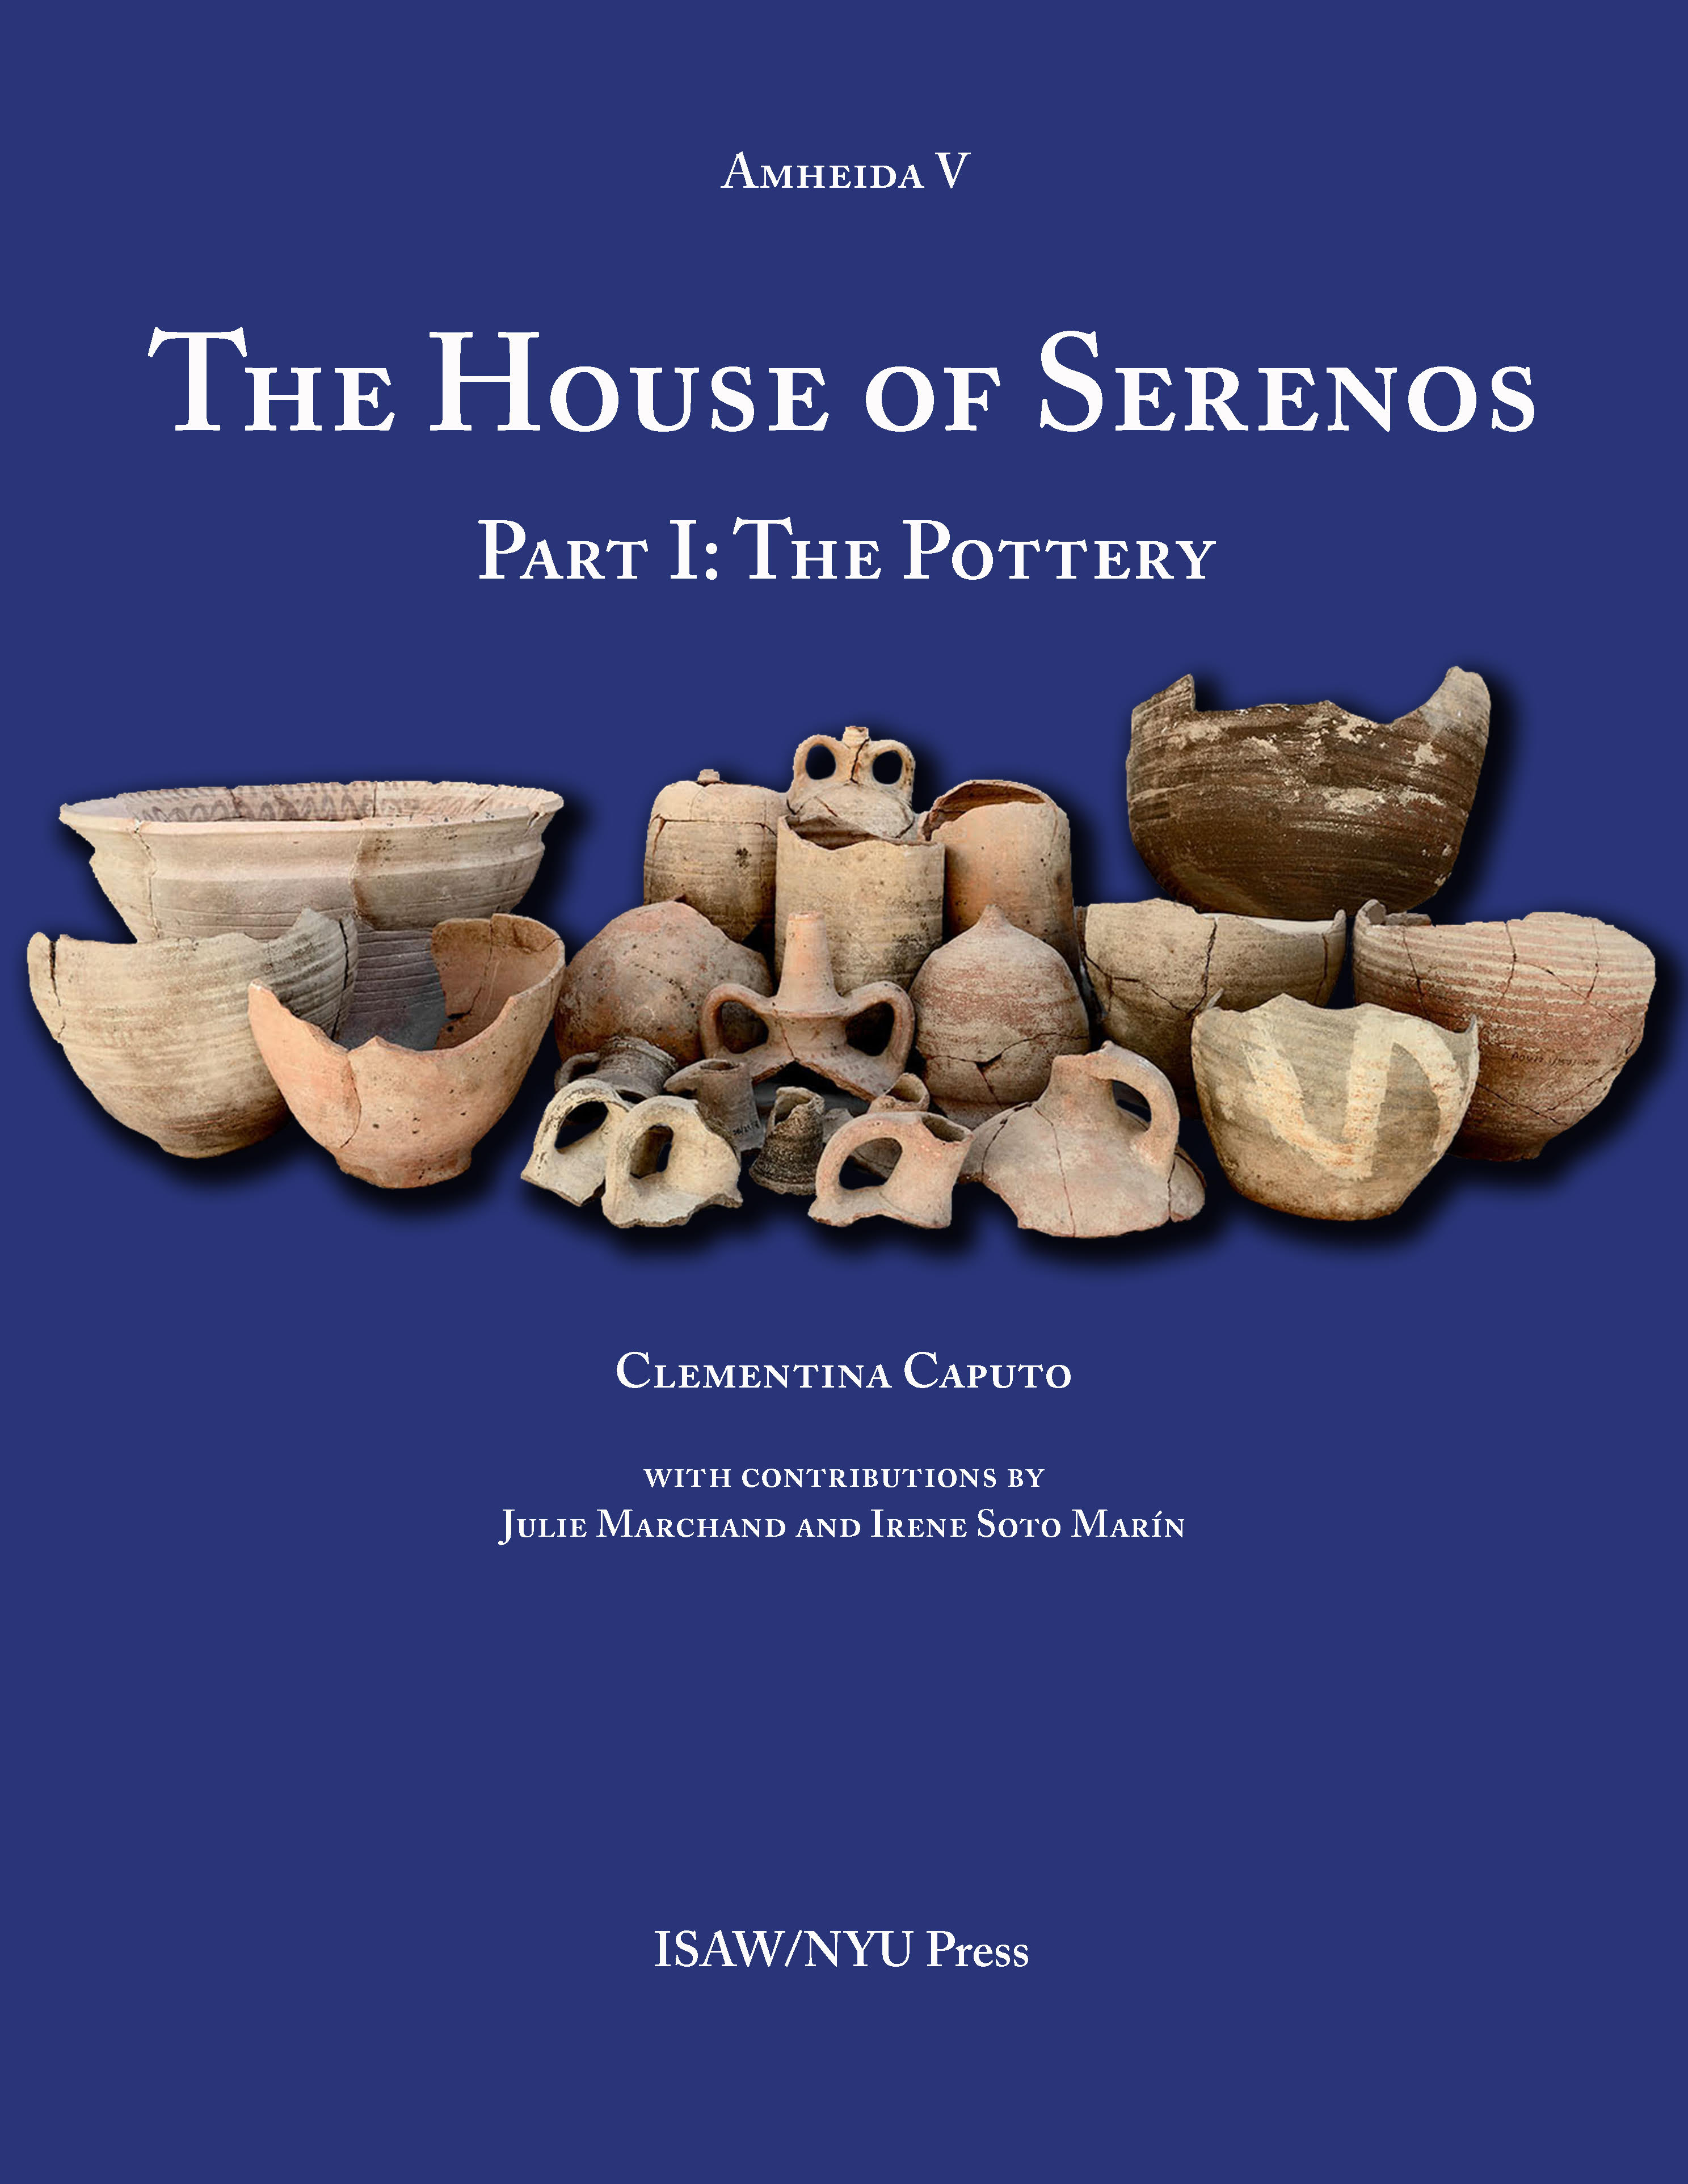 ISAW announces the publication of The House of Serenos, Part I: The Pottery (Amheida V) by Clementina Caputo